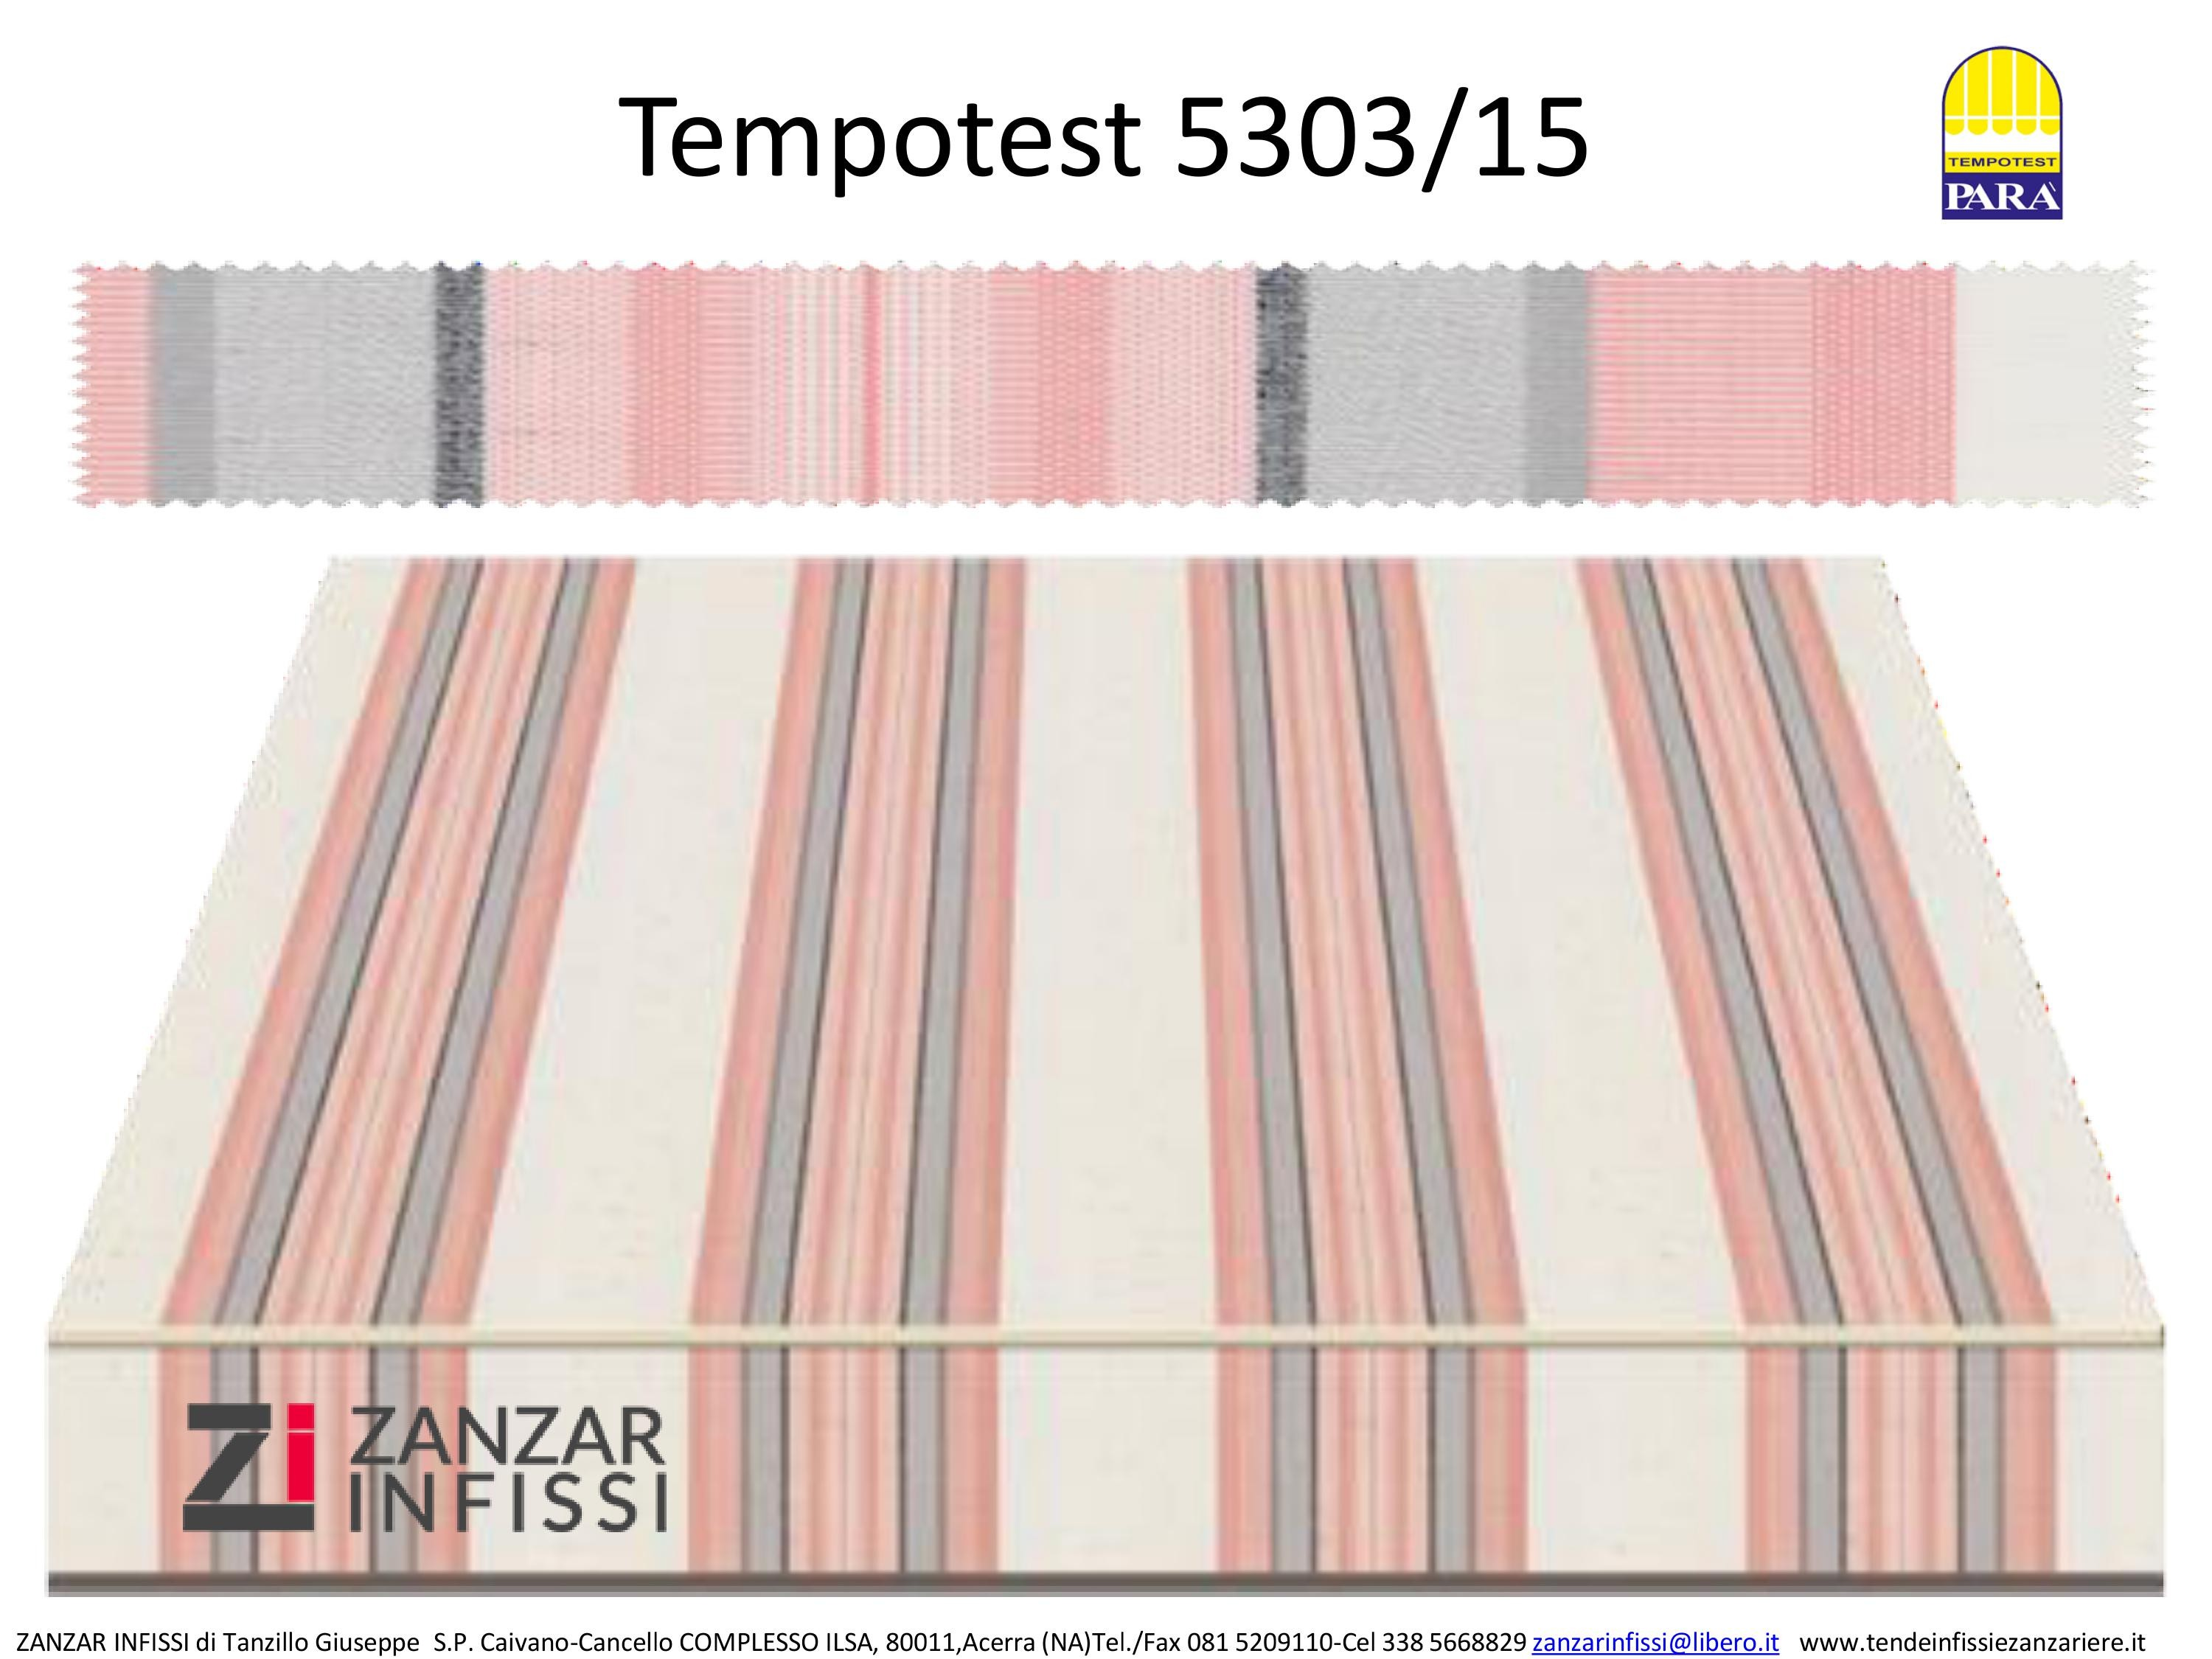 Tempotest 5303/15